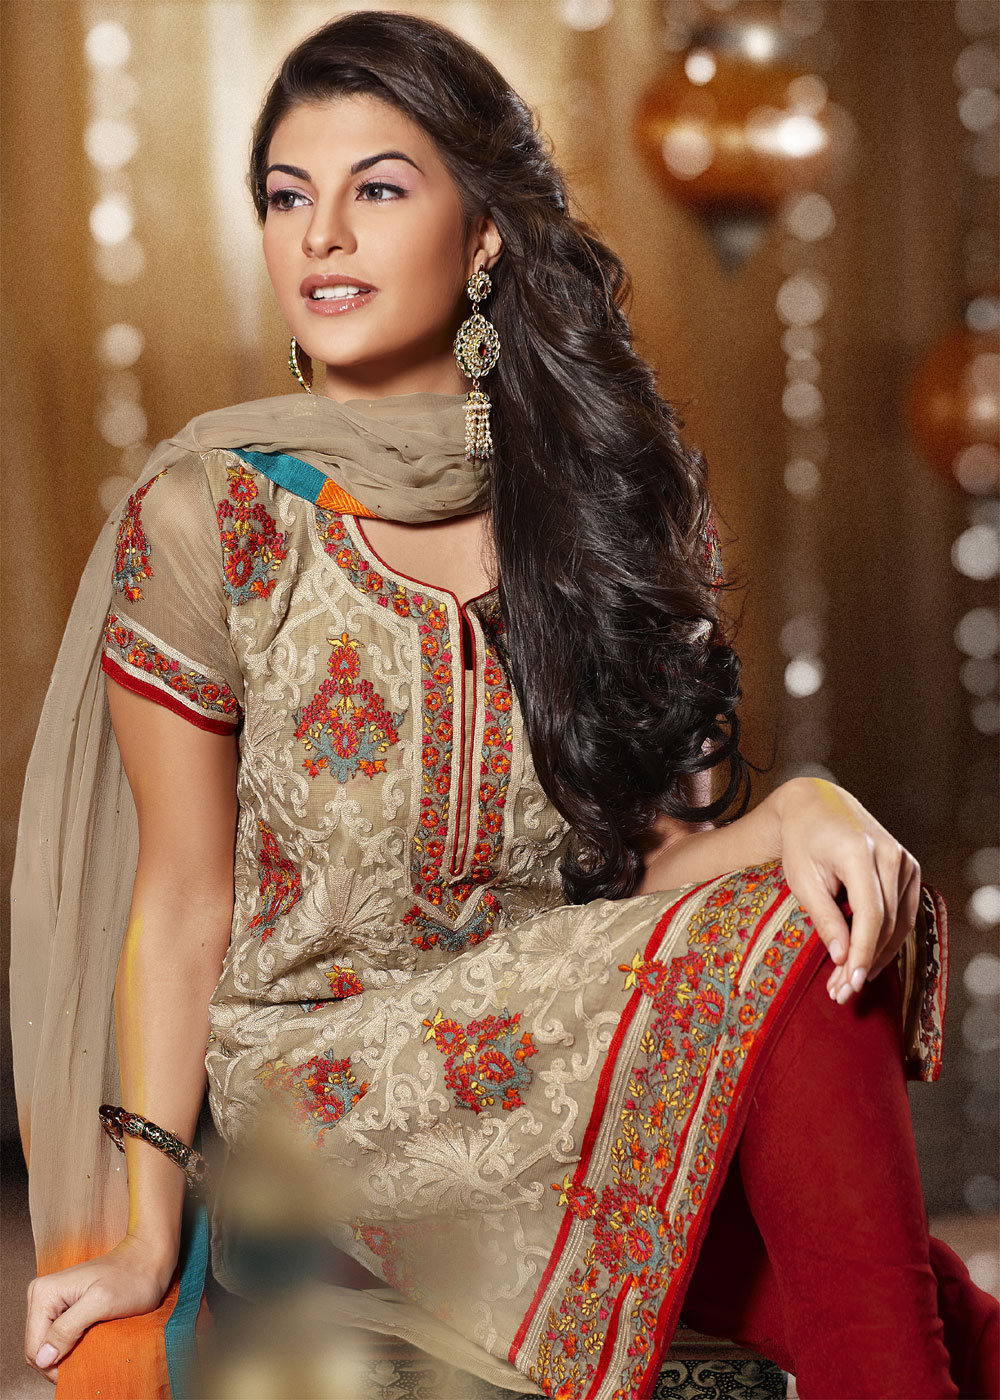 Kajal hd in modern dress - Jacqueline Actress Jacqueline Fernandez Latest Salwar Kameez Stills